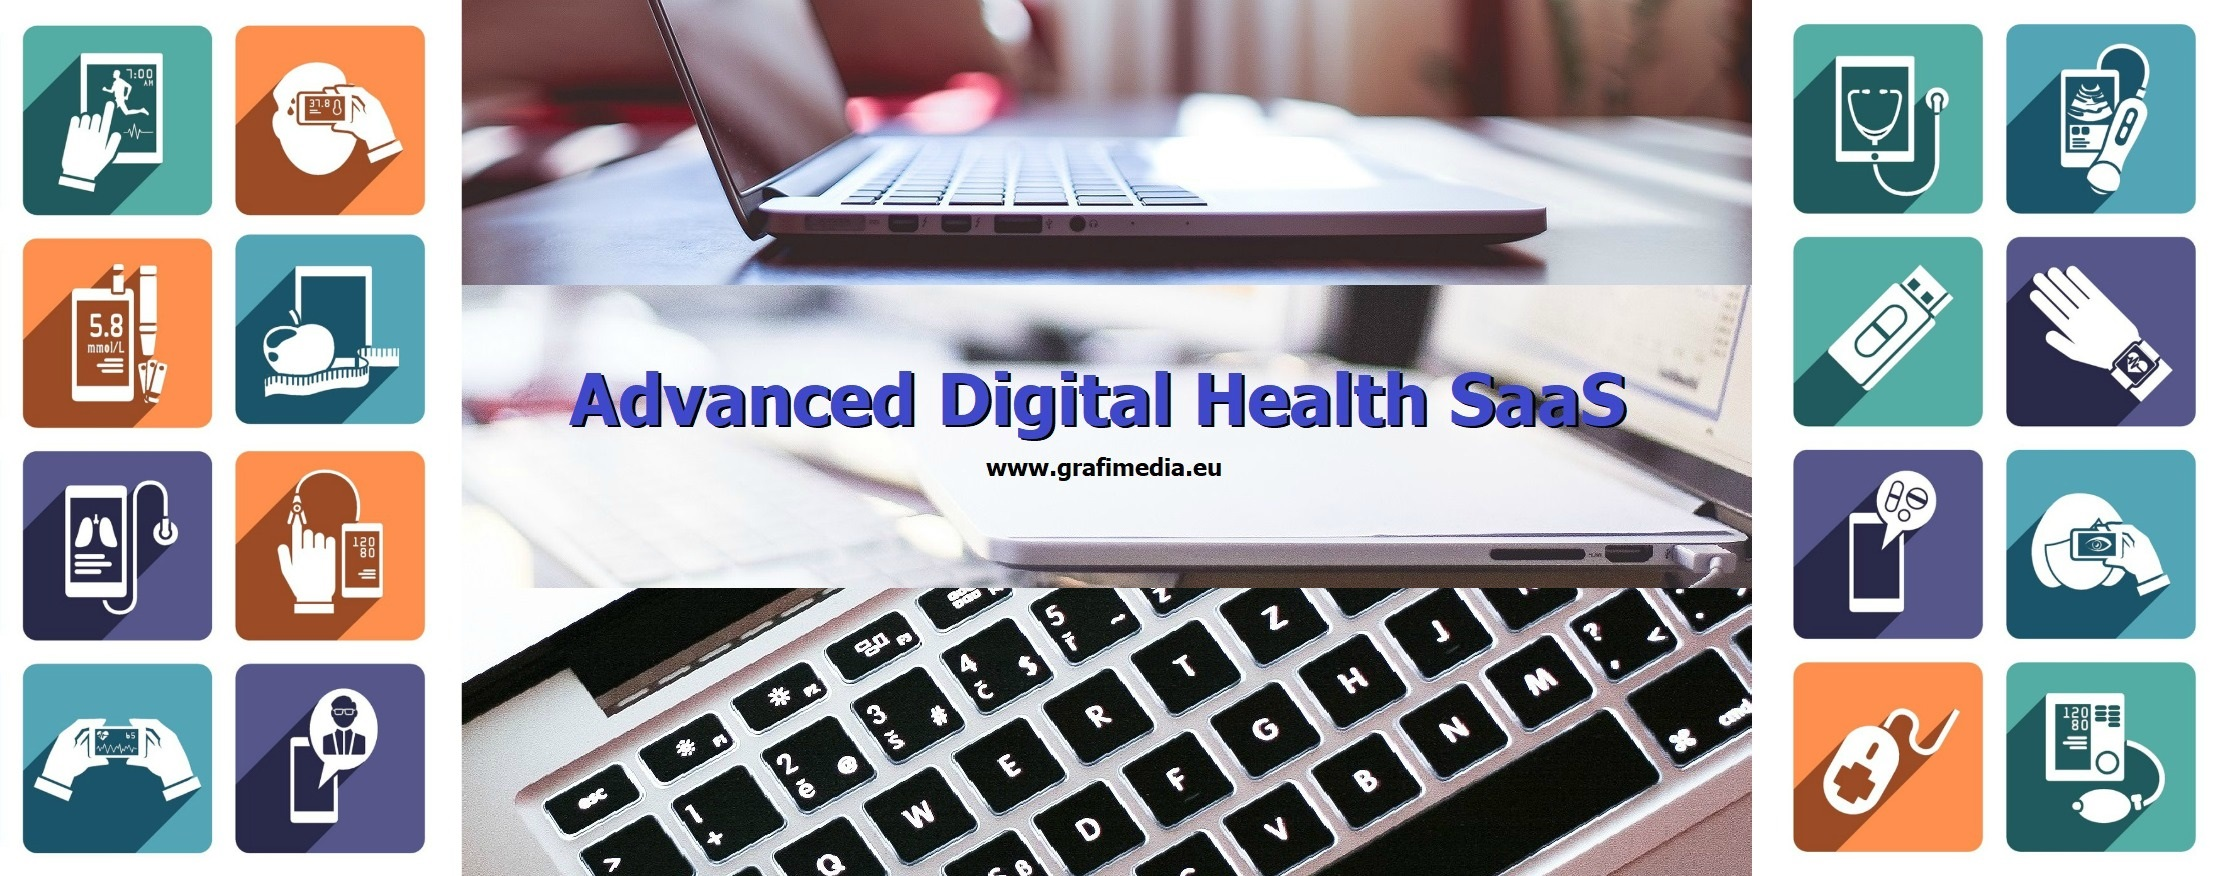 Advanced Digital Health SaaS Grafimedia